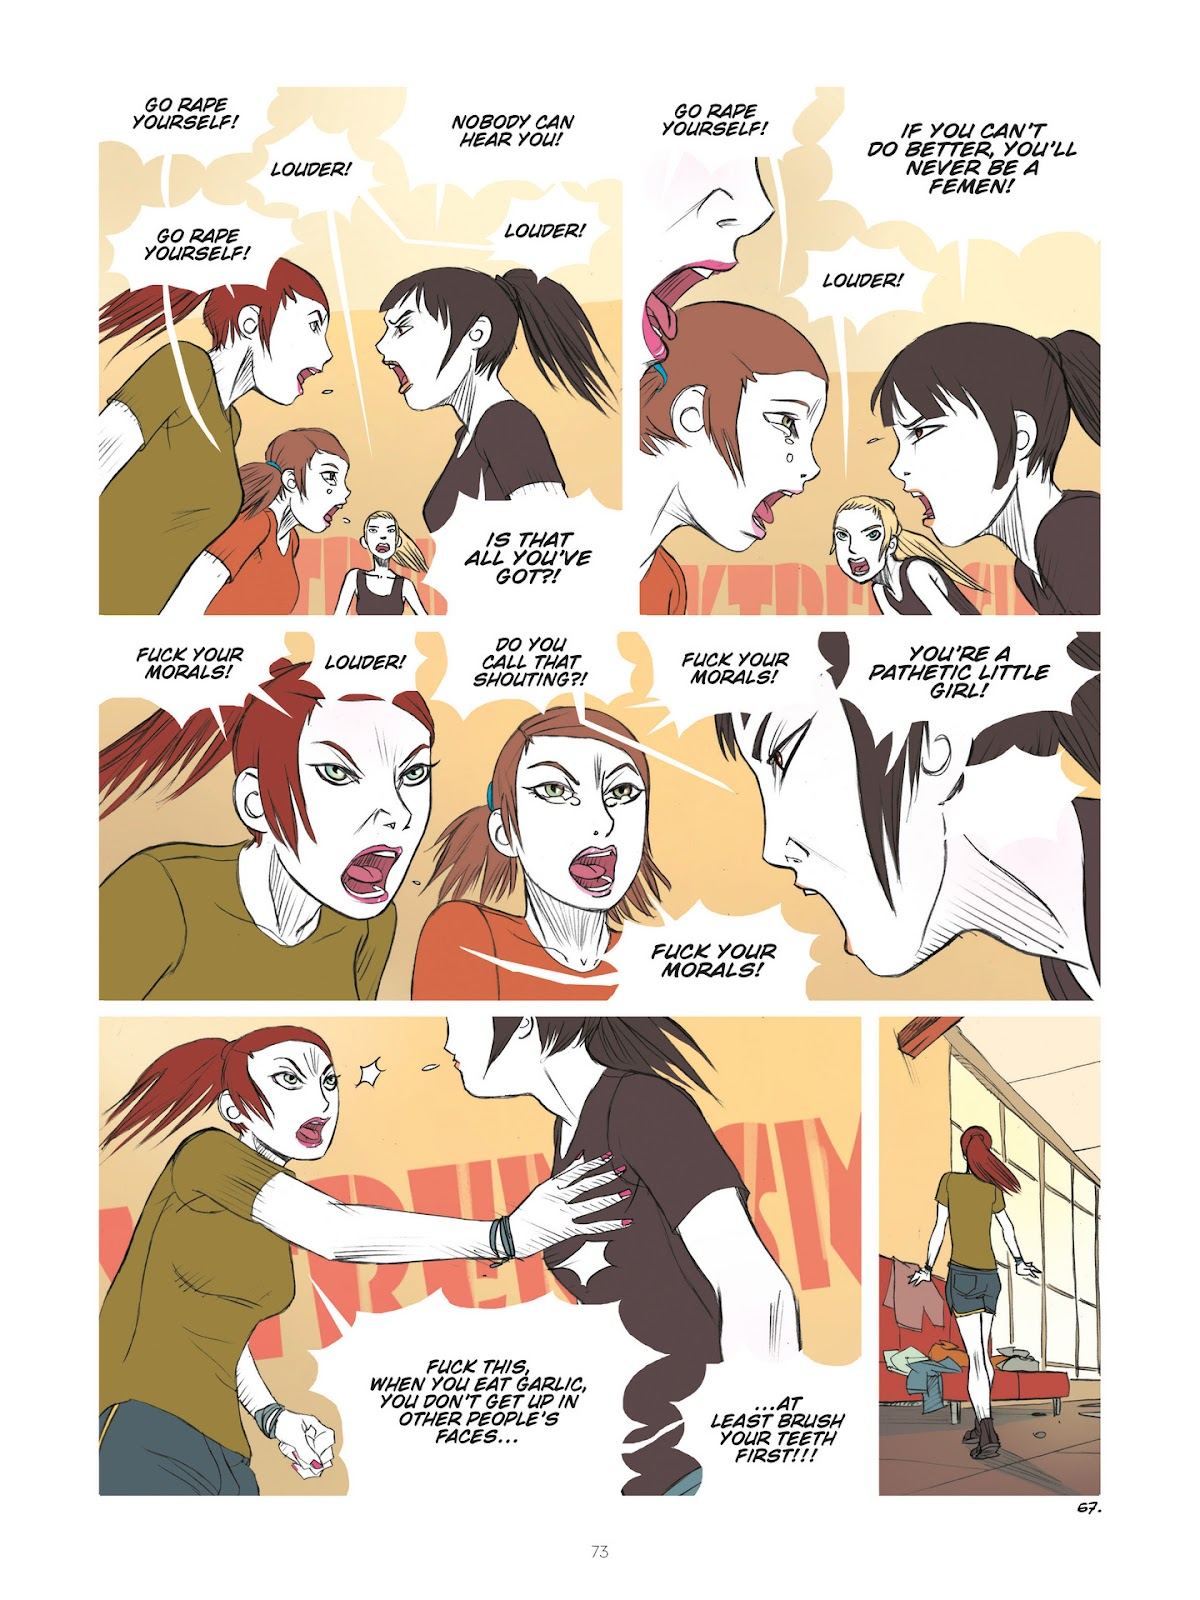 Read online Diary of A Femen comic -  Issue # TPB - 75